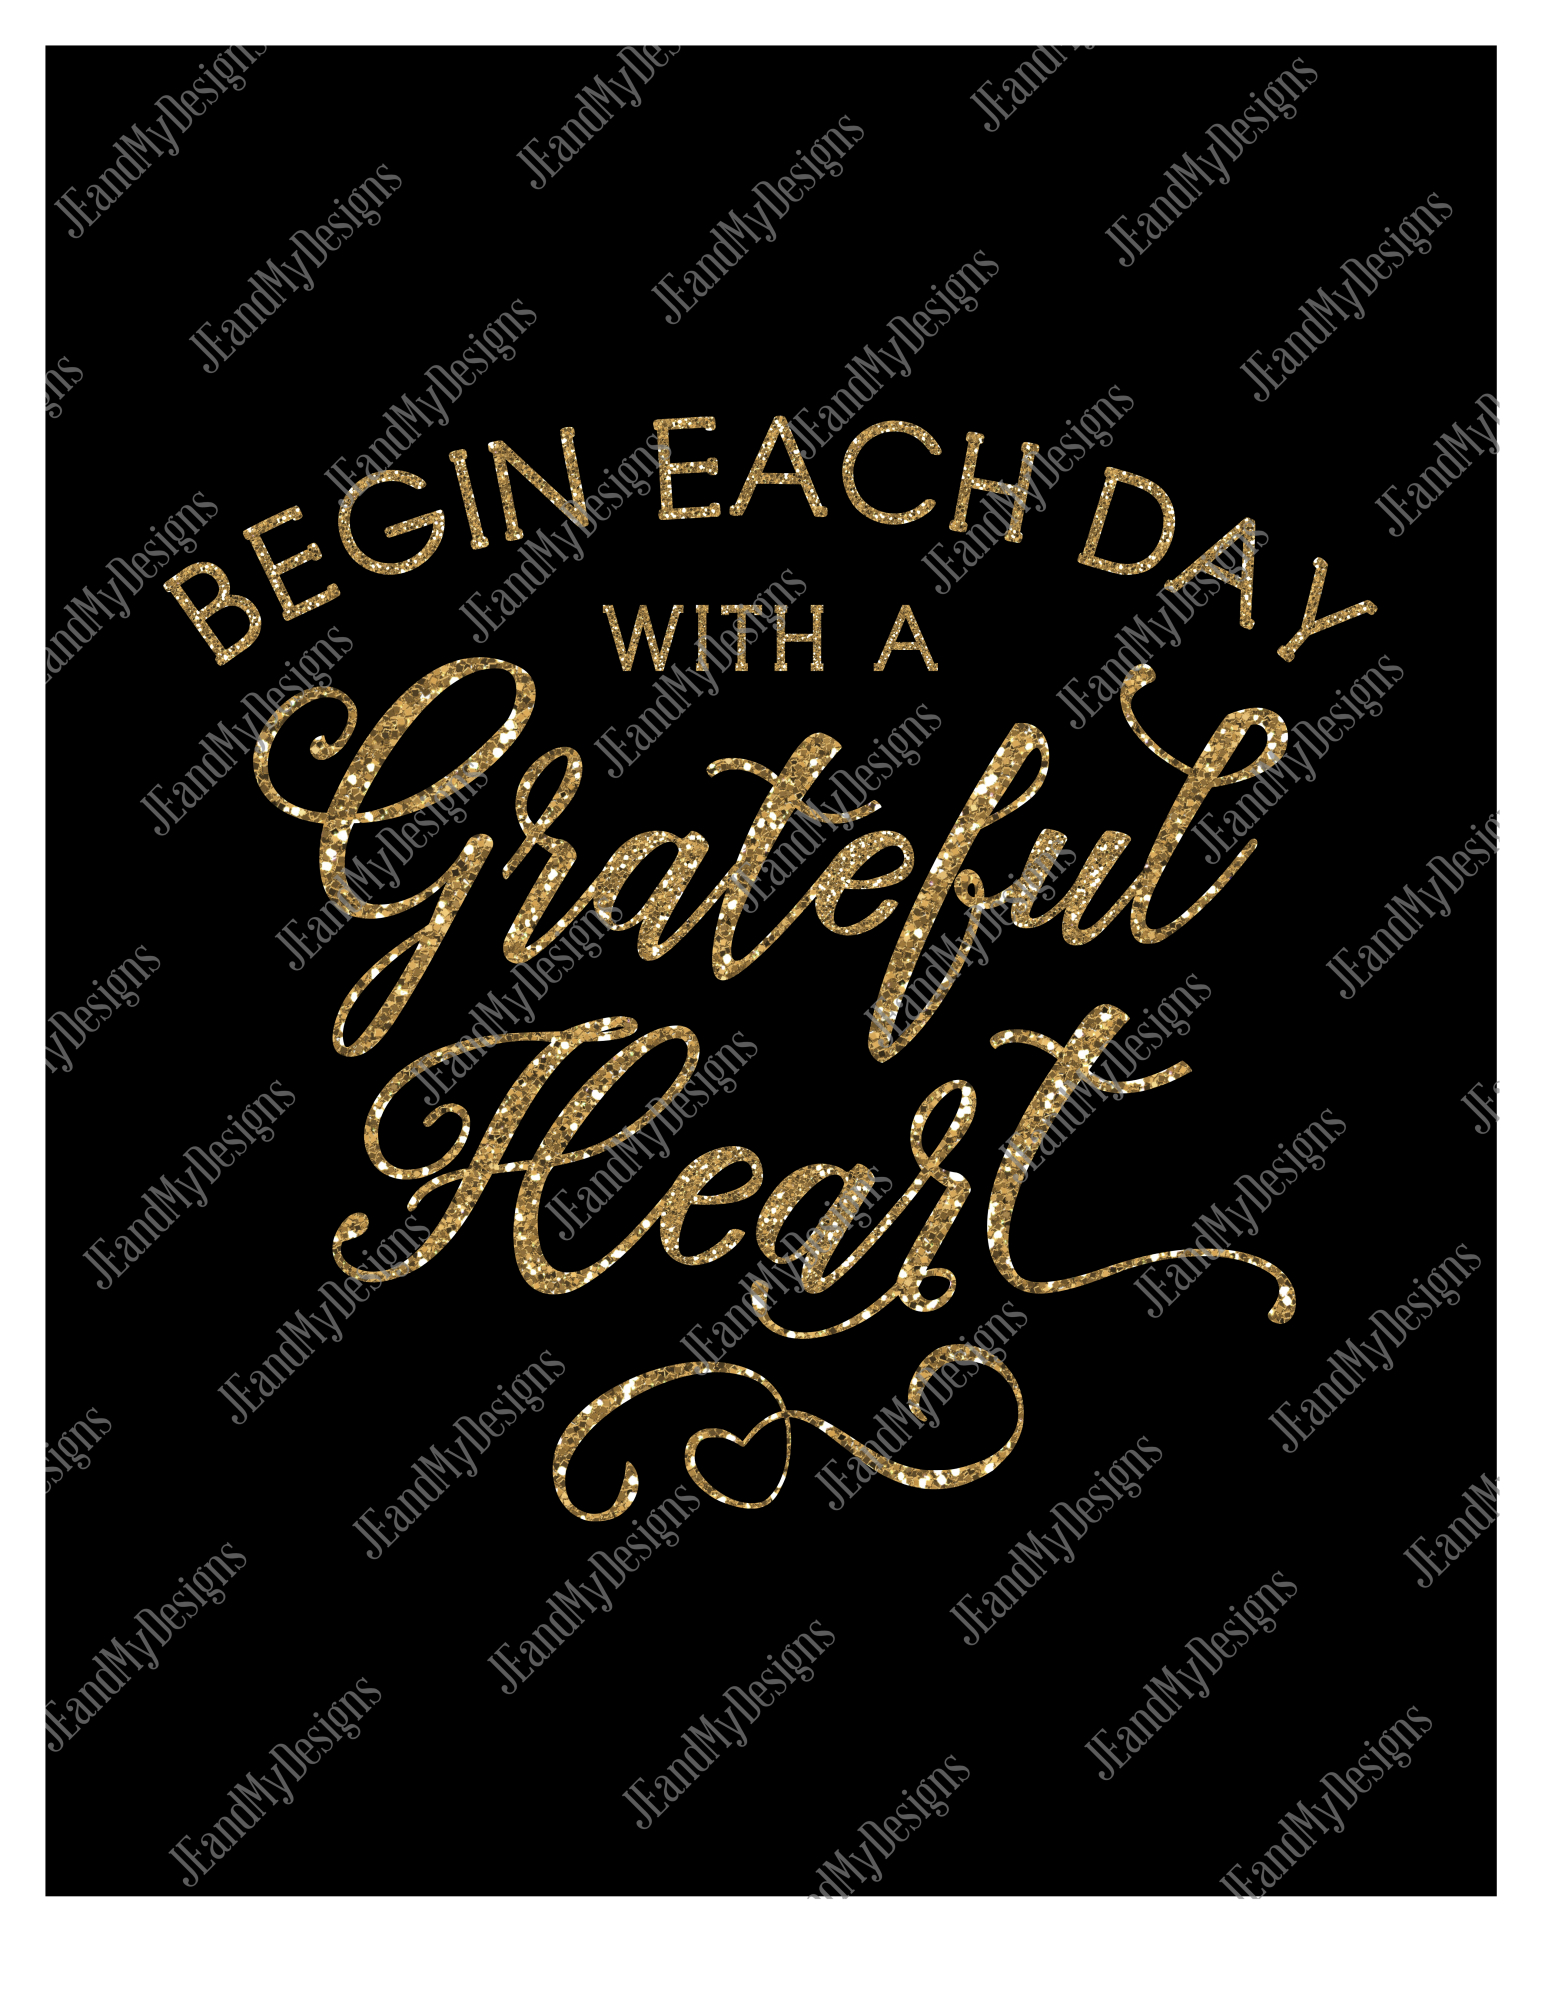 Begin Each Day With a Grateful Heart SVG, JPEG, PNG, EPS, DXF example image 2